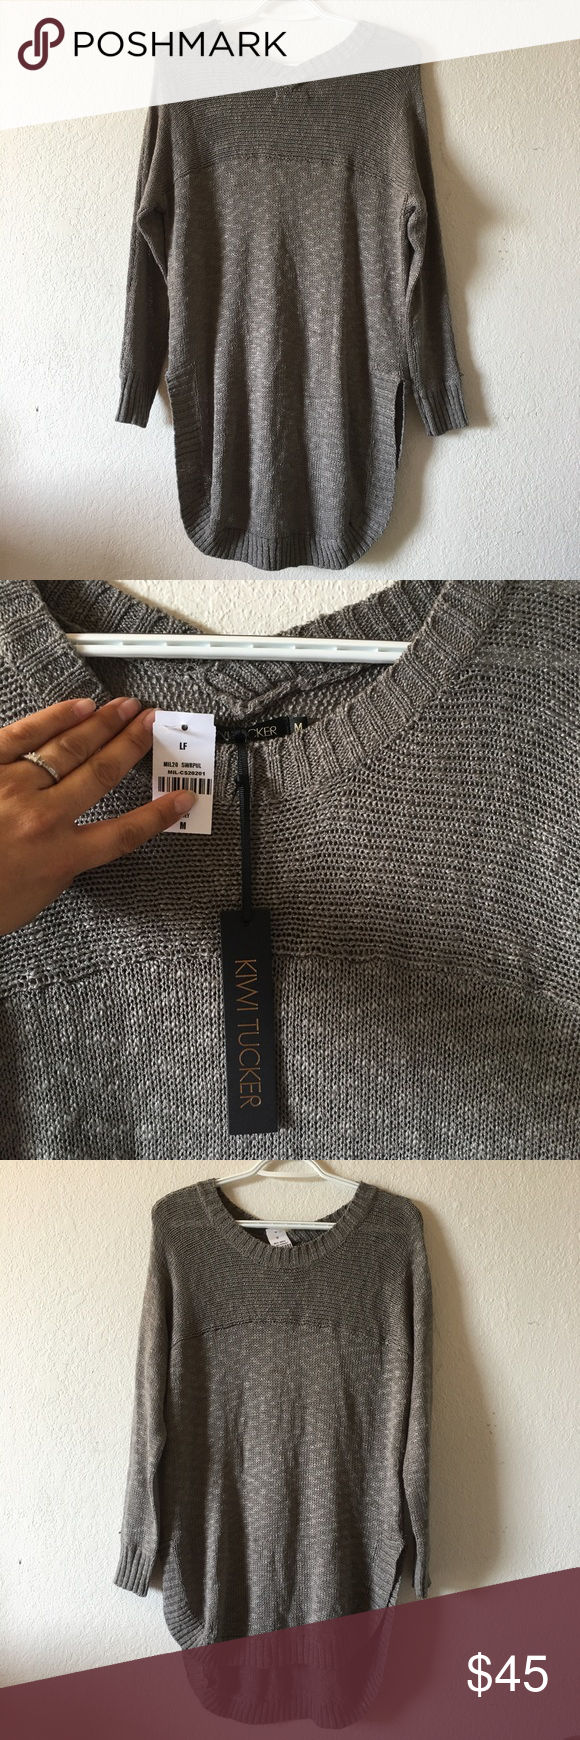 LF Kiwi Tucker Sweater Medium NWT NWT! Retail: $144 Size Medium Grey / olive green in color Price is firm! LF Sweaters